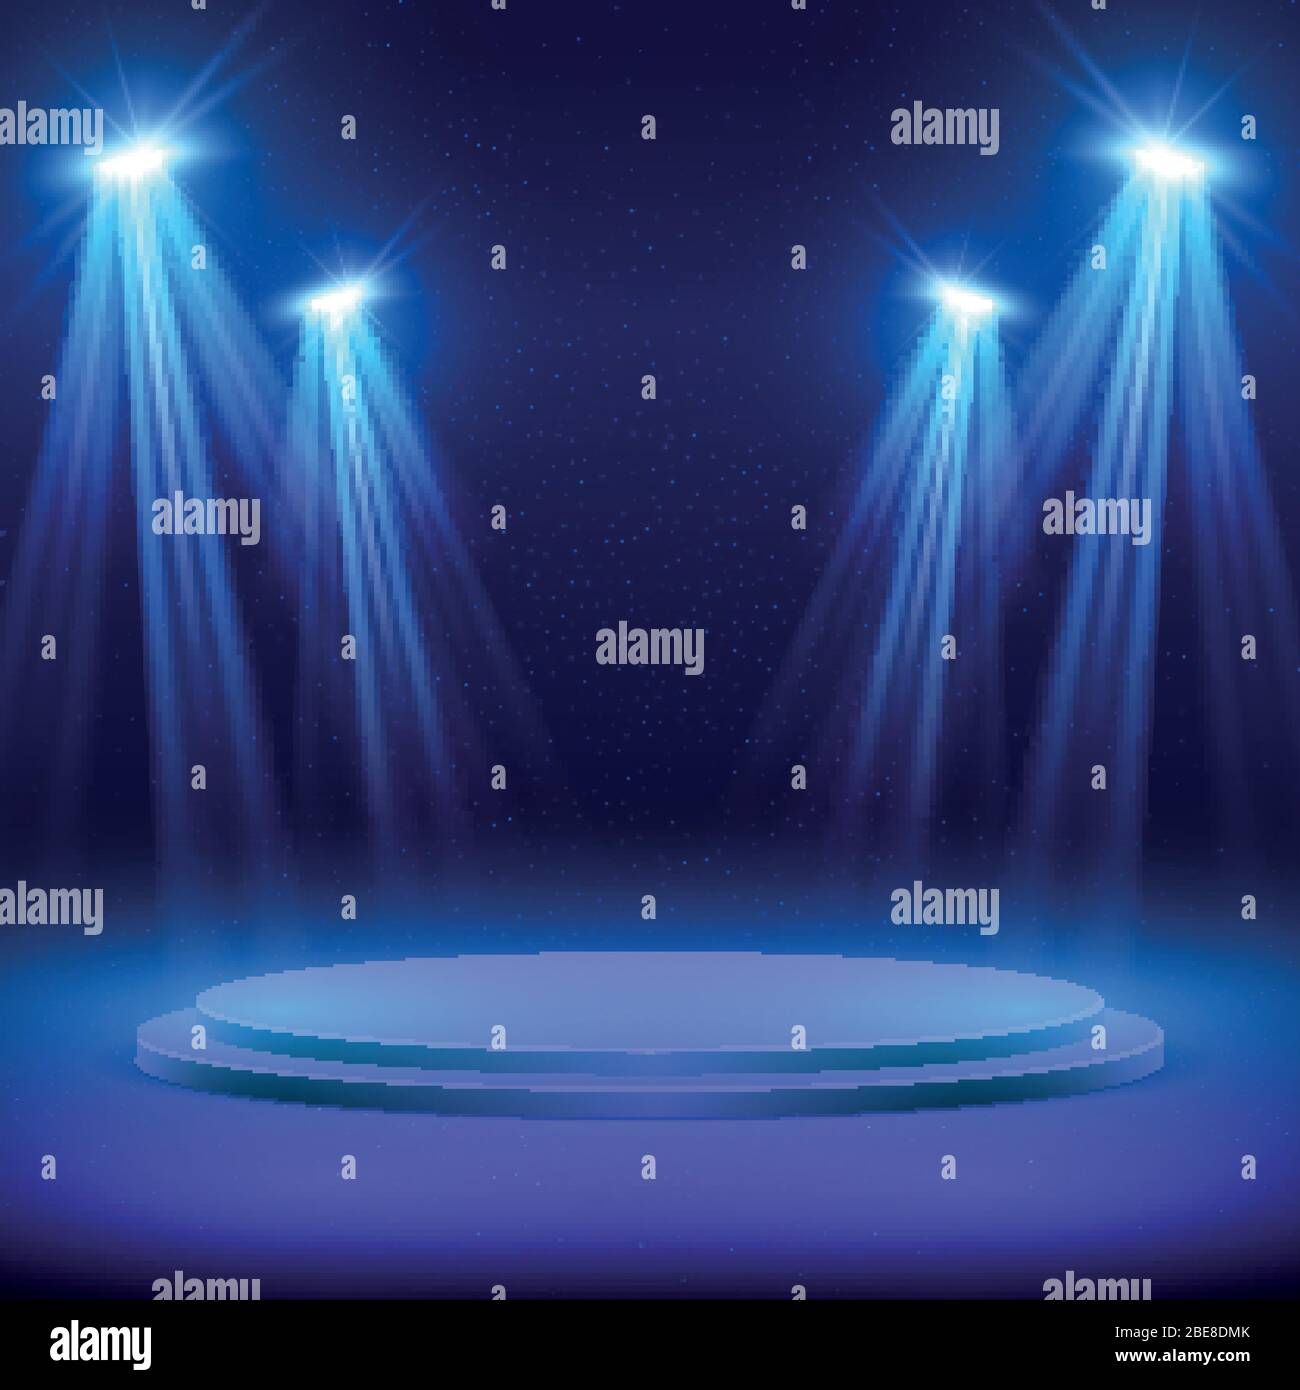 concert stage with spot light lighting show performance vector background stage with spotlight for show illuminated illustration stock vector image art alamy https www alamy com concert stage with spot light lighting show performance vector background stage with spotlight for show illuminated illustration image352998931 html